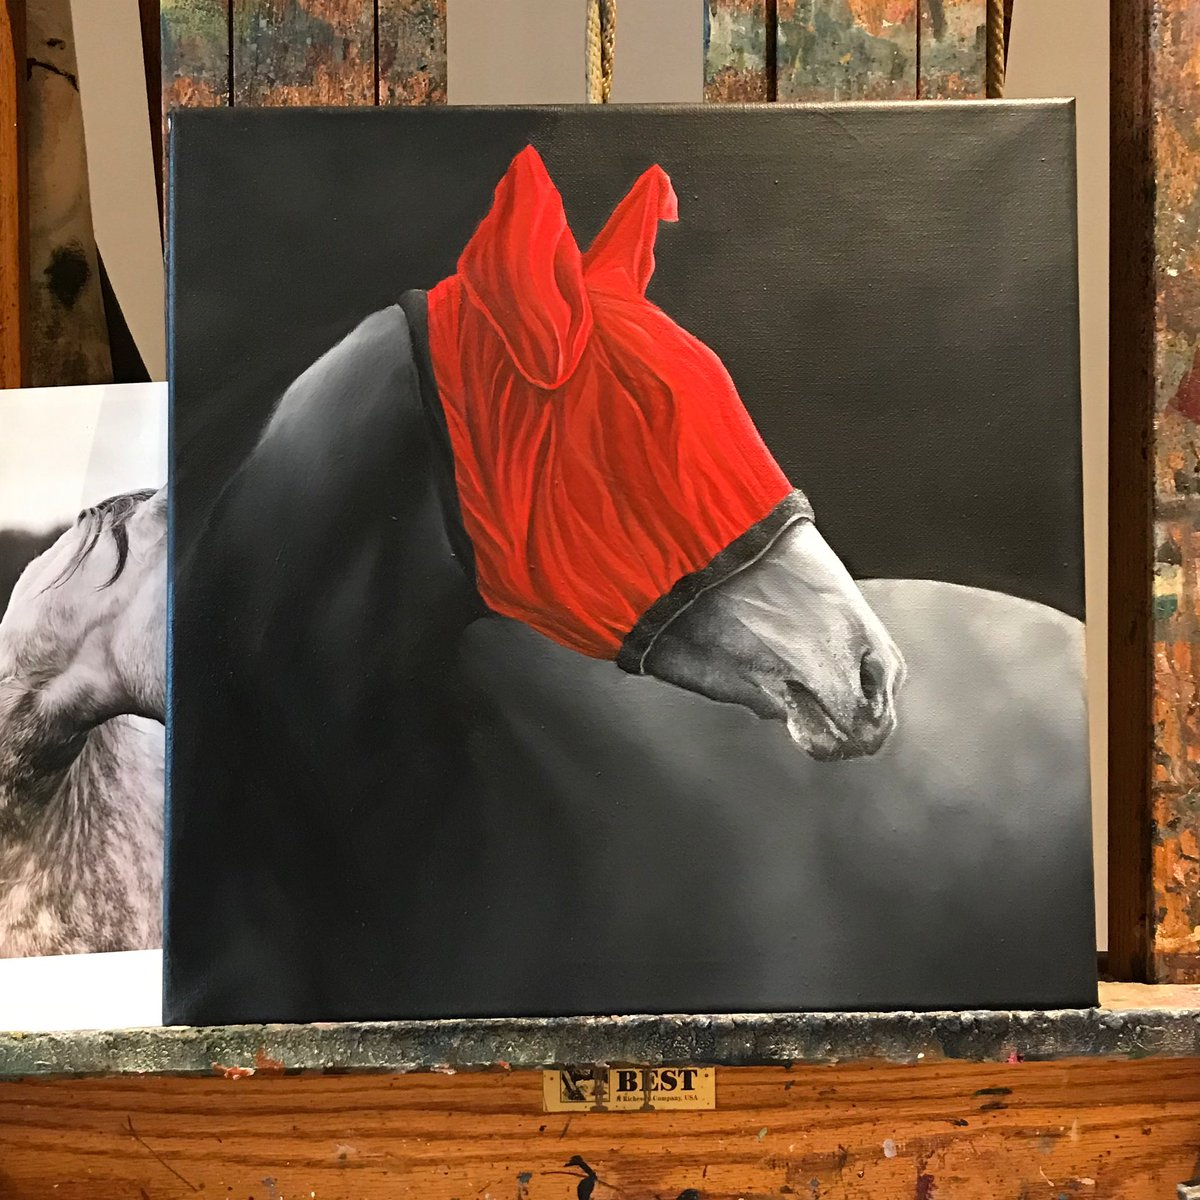 Many tweaks and changes = 4 years in the making but I think Grace's Secret is finally finished 😌   #art #artist #artistic #artwork🎨 #artoftheday #artistlife #abstractart #oilpainting #oilpaintings #oilpaint #oilpaintingoncanvas #painting #horse #horsepainting #PeakyBlinders